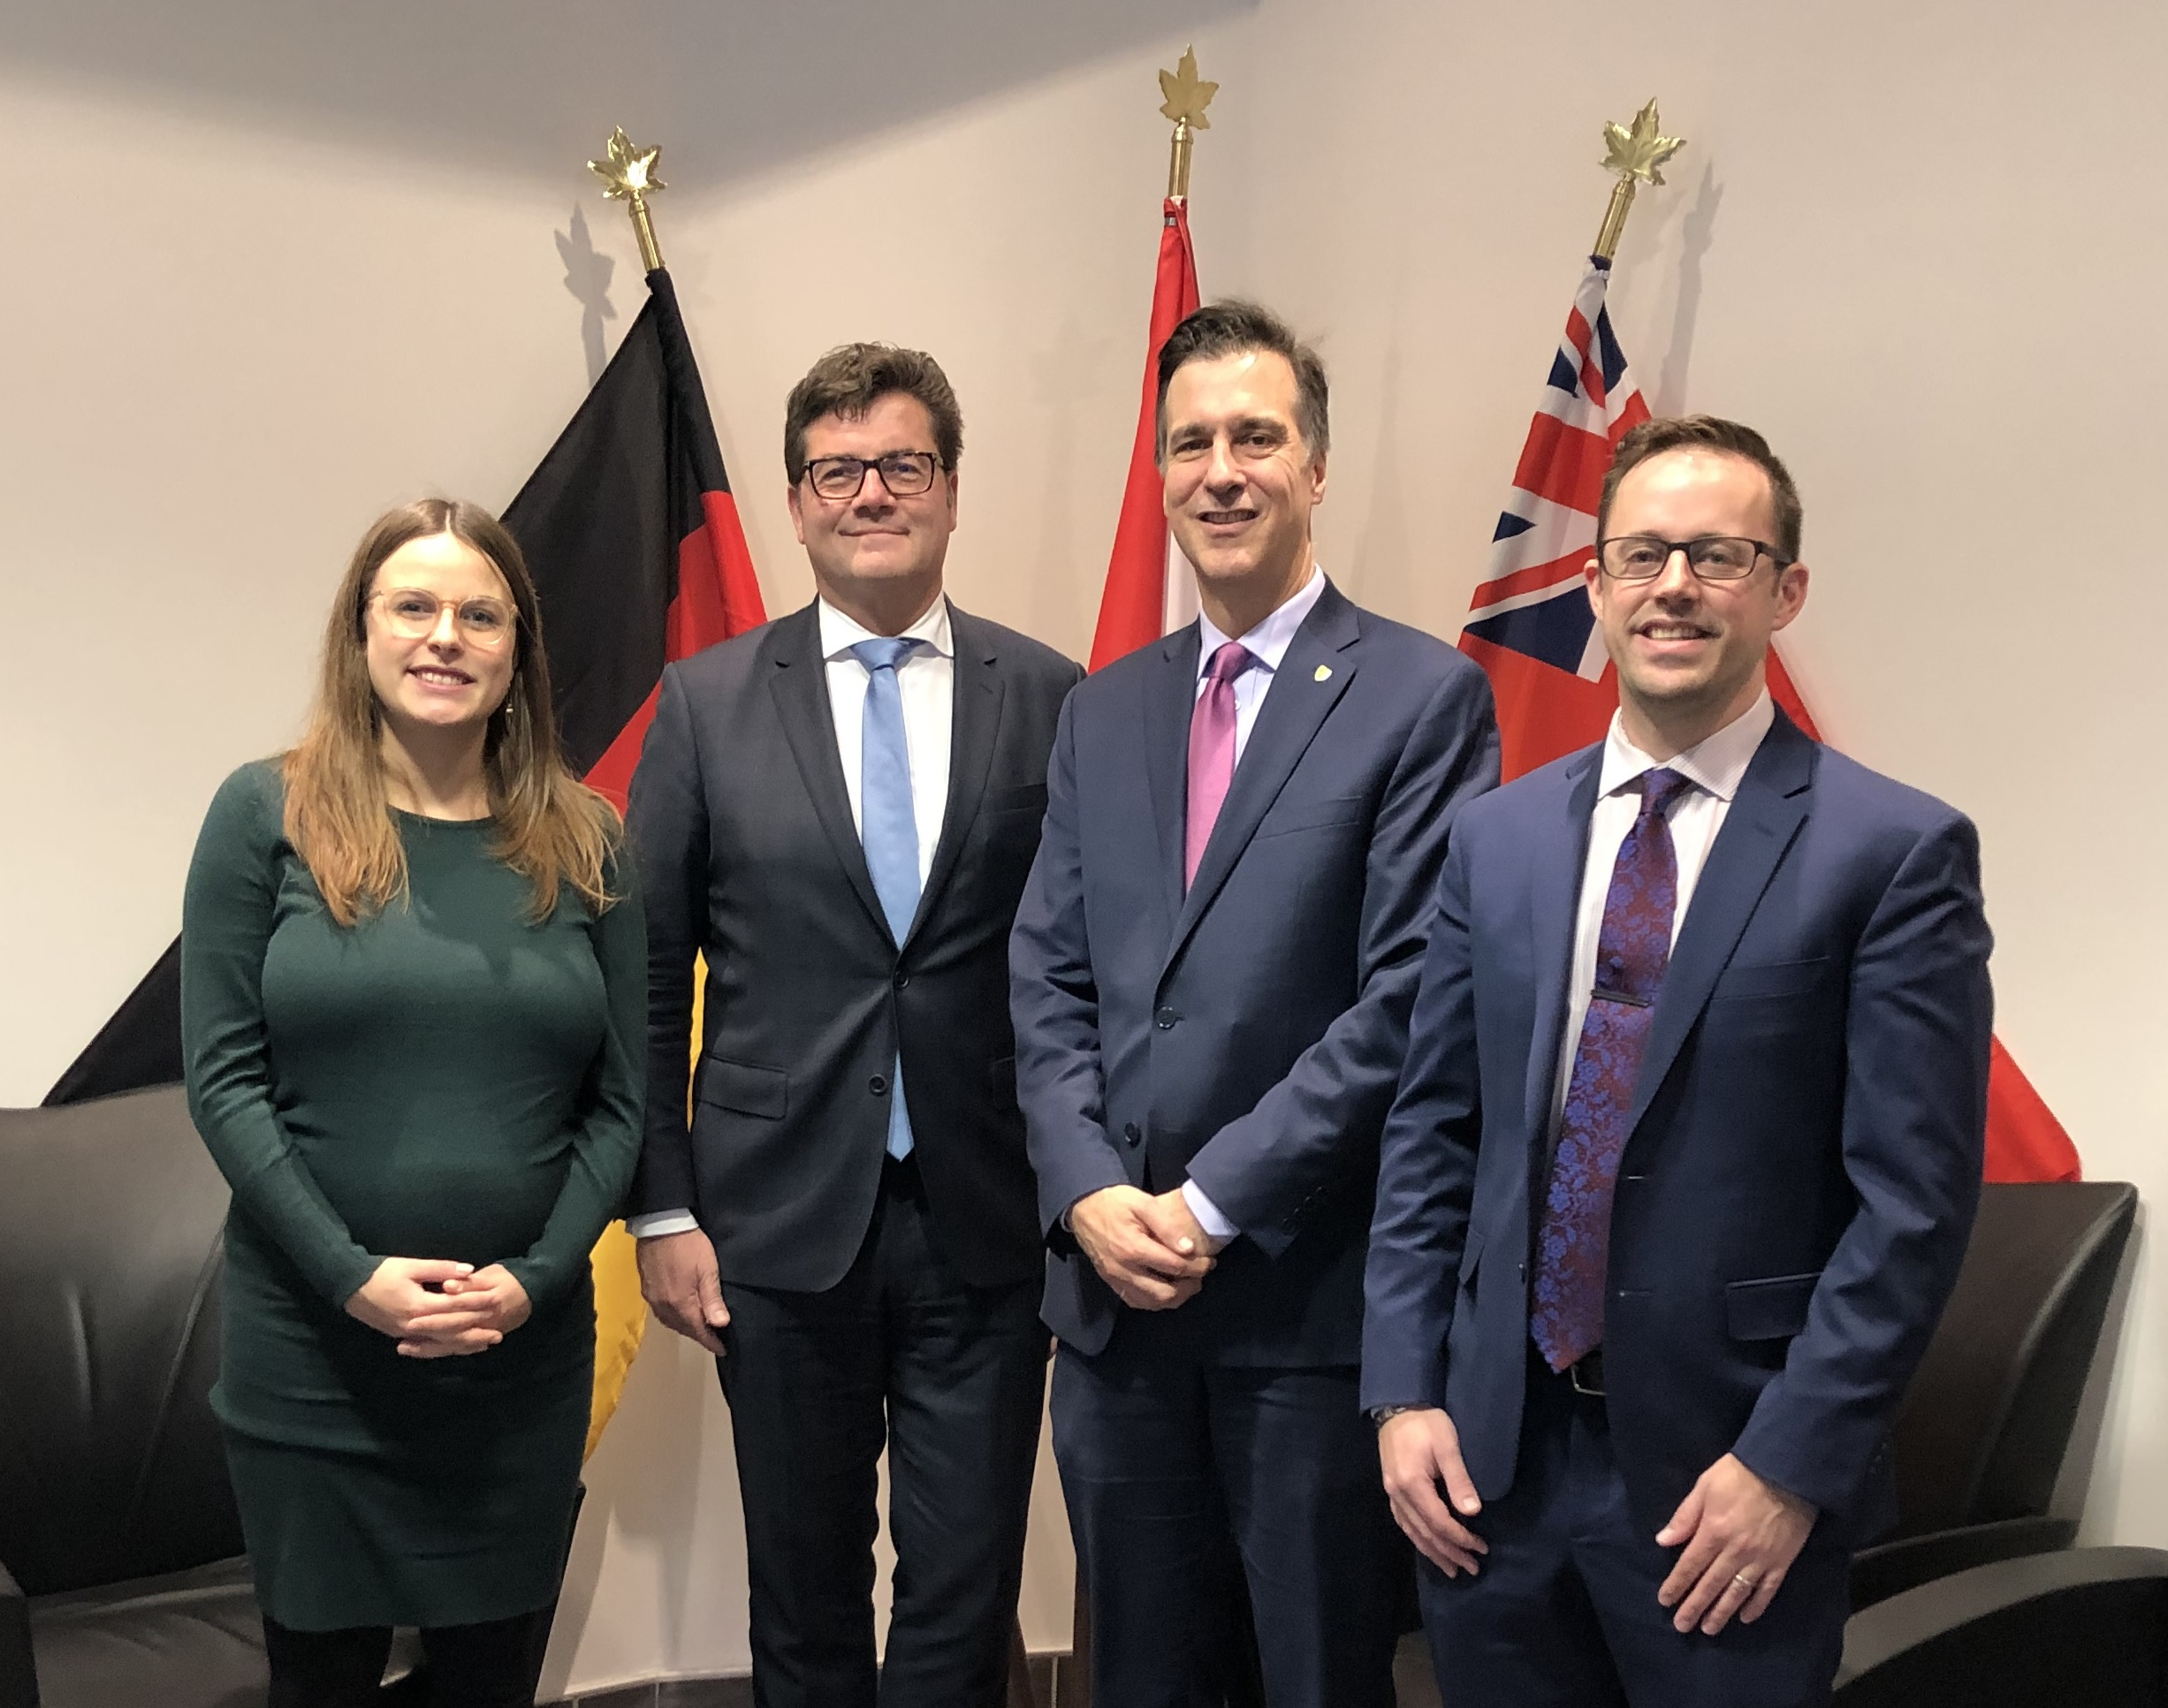 Consul General of the Federal Republic of Germany in Toronto